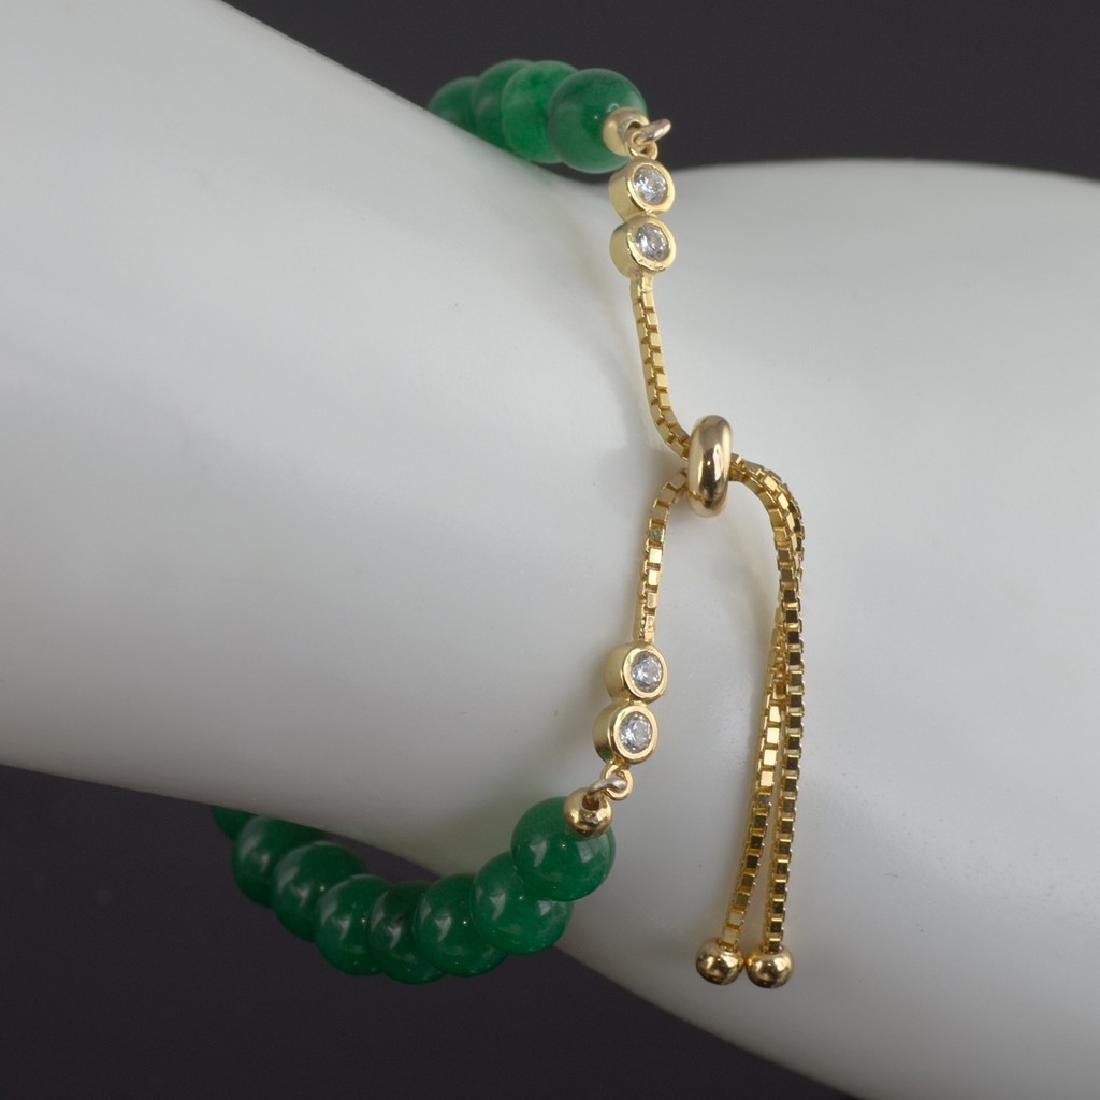 Adjustable Imperial Green Jade Bracelet - 6